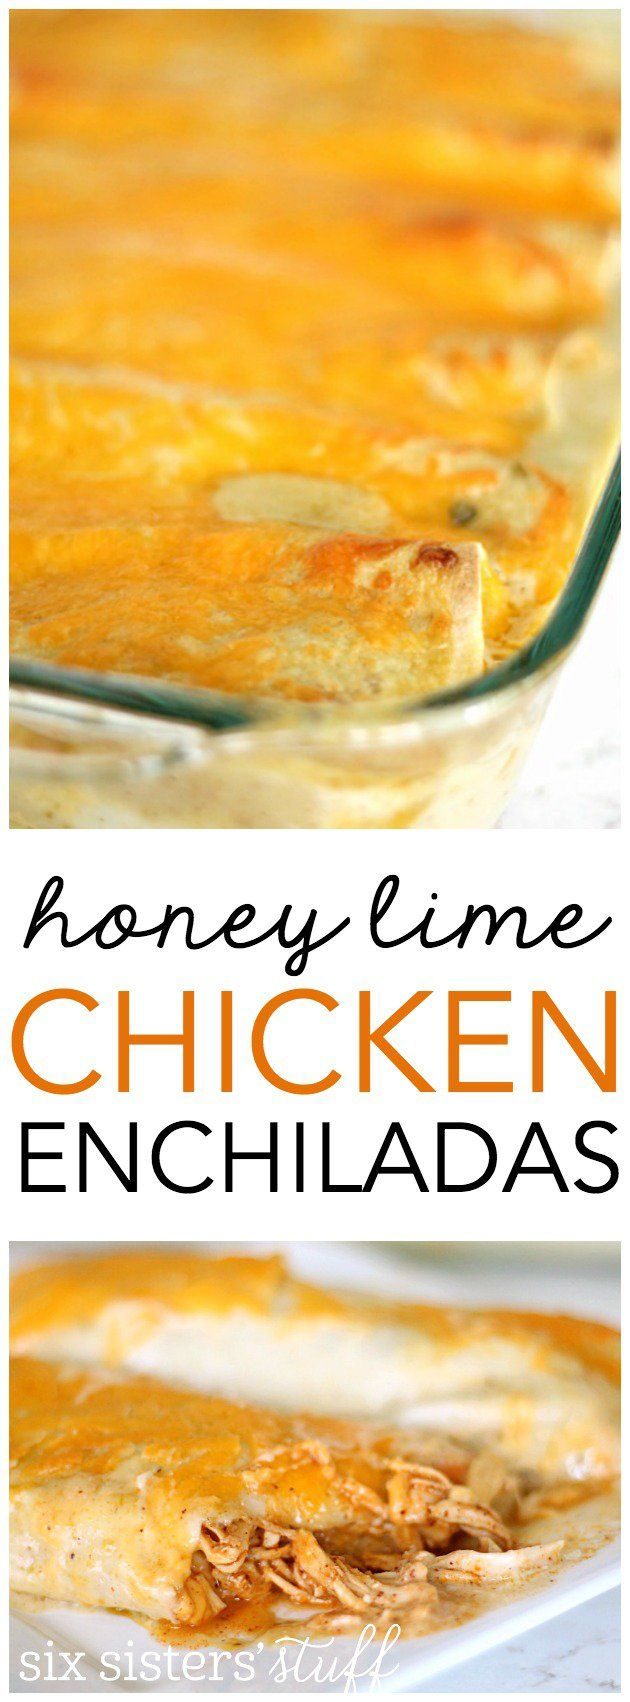 My family is obsessed with these Honey Lime Chicken Enchiladas from SixSistersStuff.com!